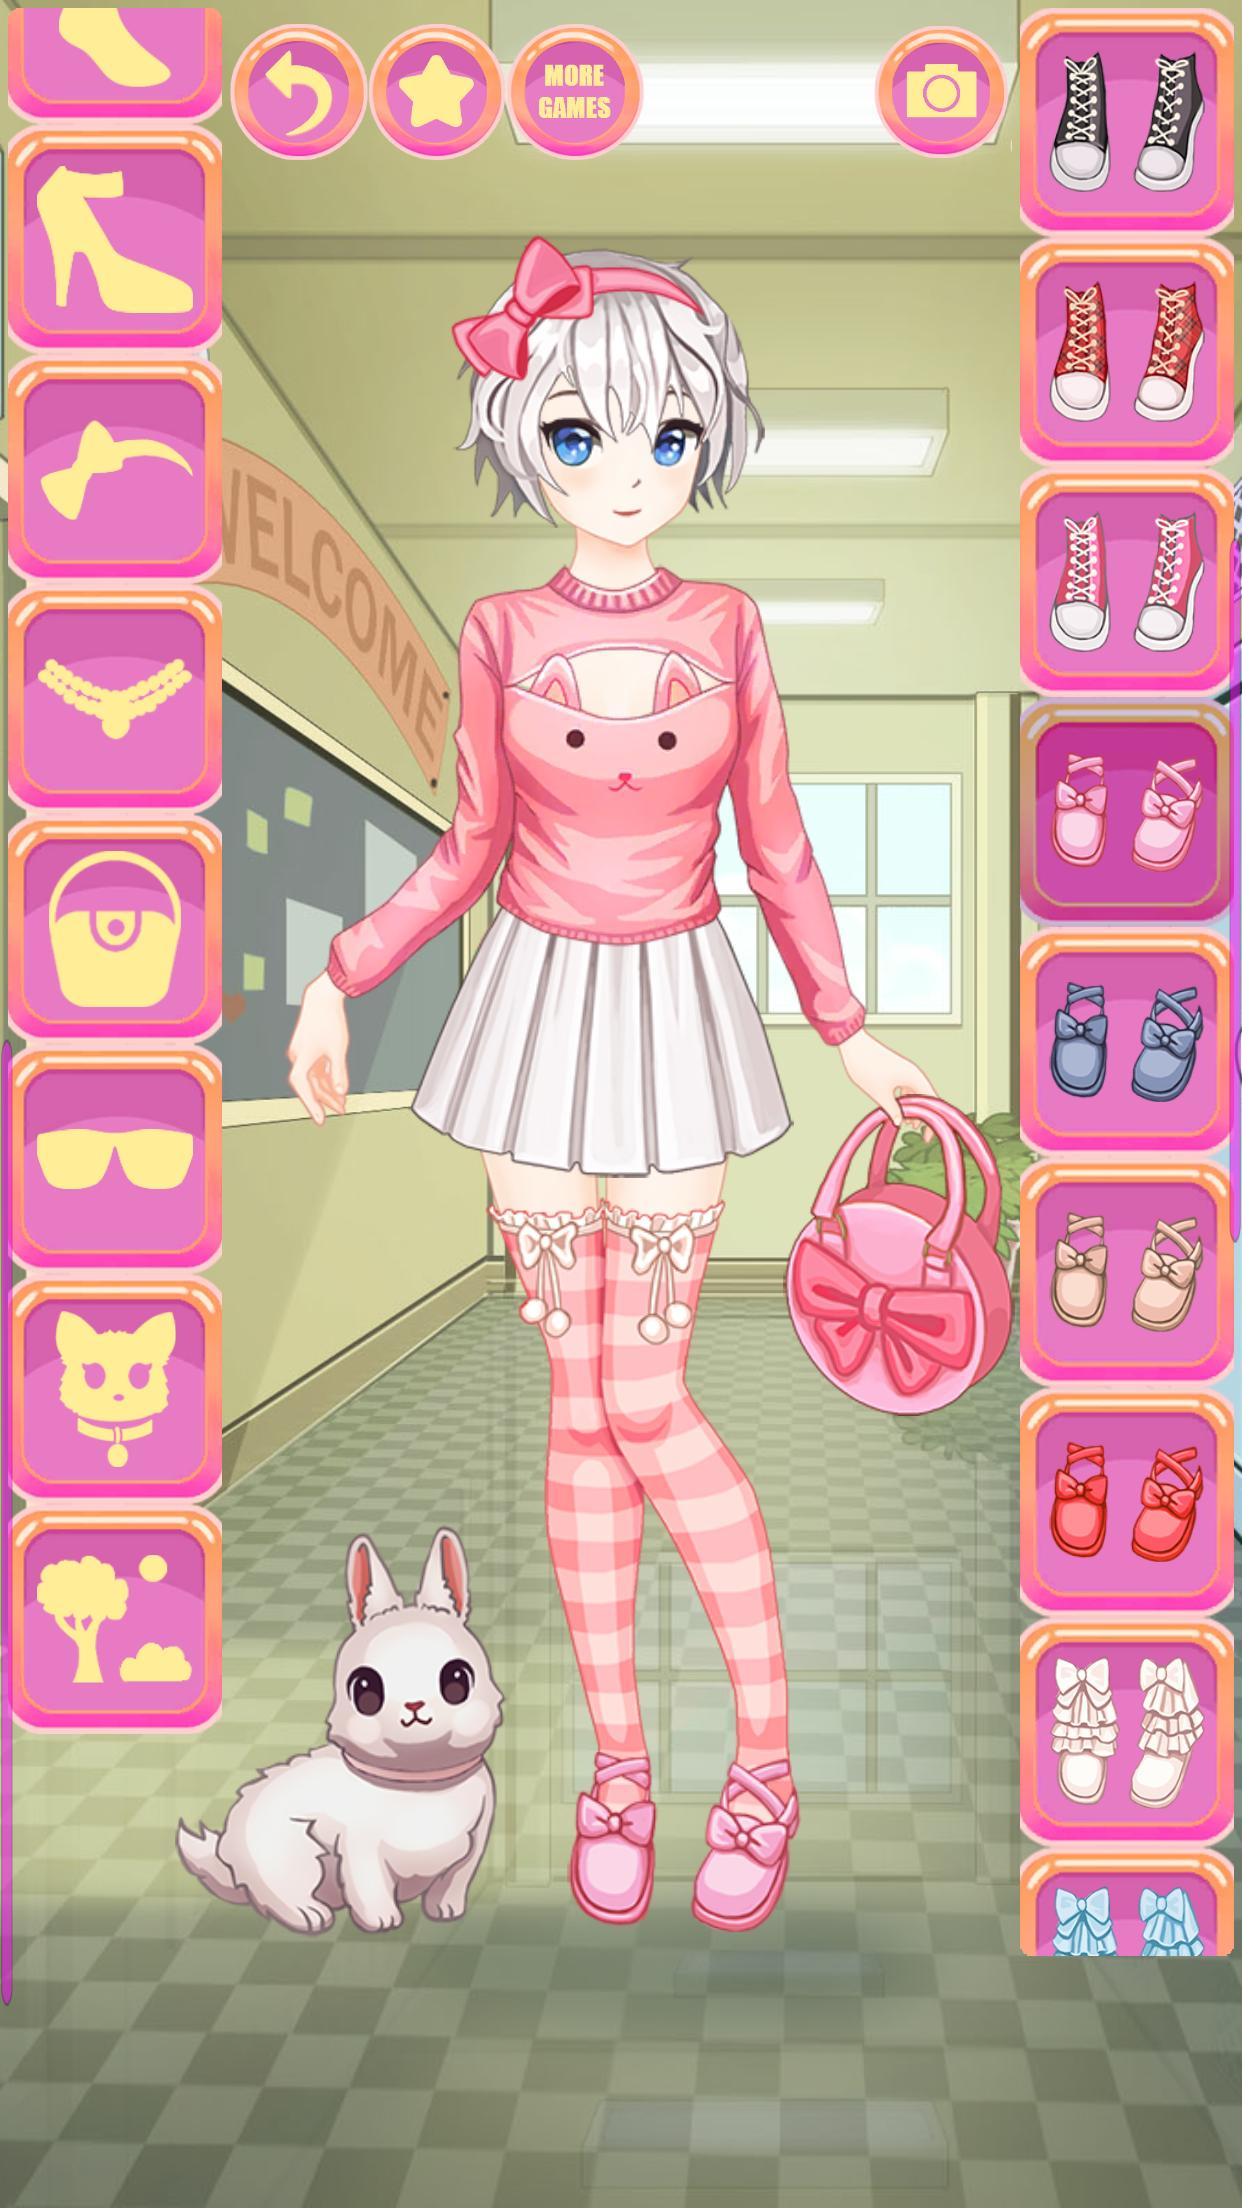 Anime Y Kawaii Vestir Chicas For Android Apk Download